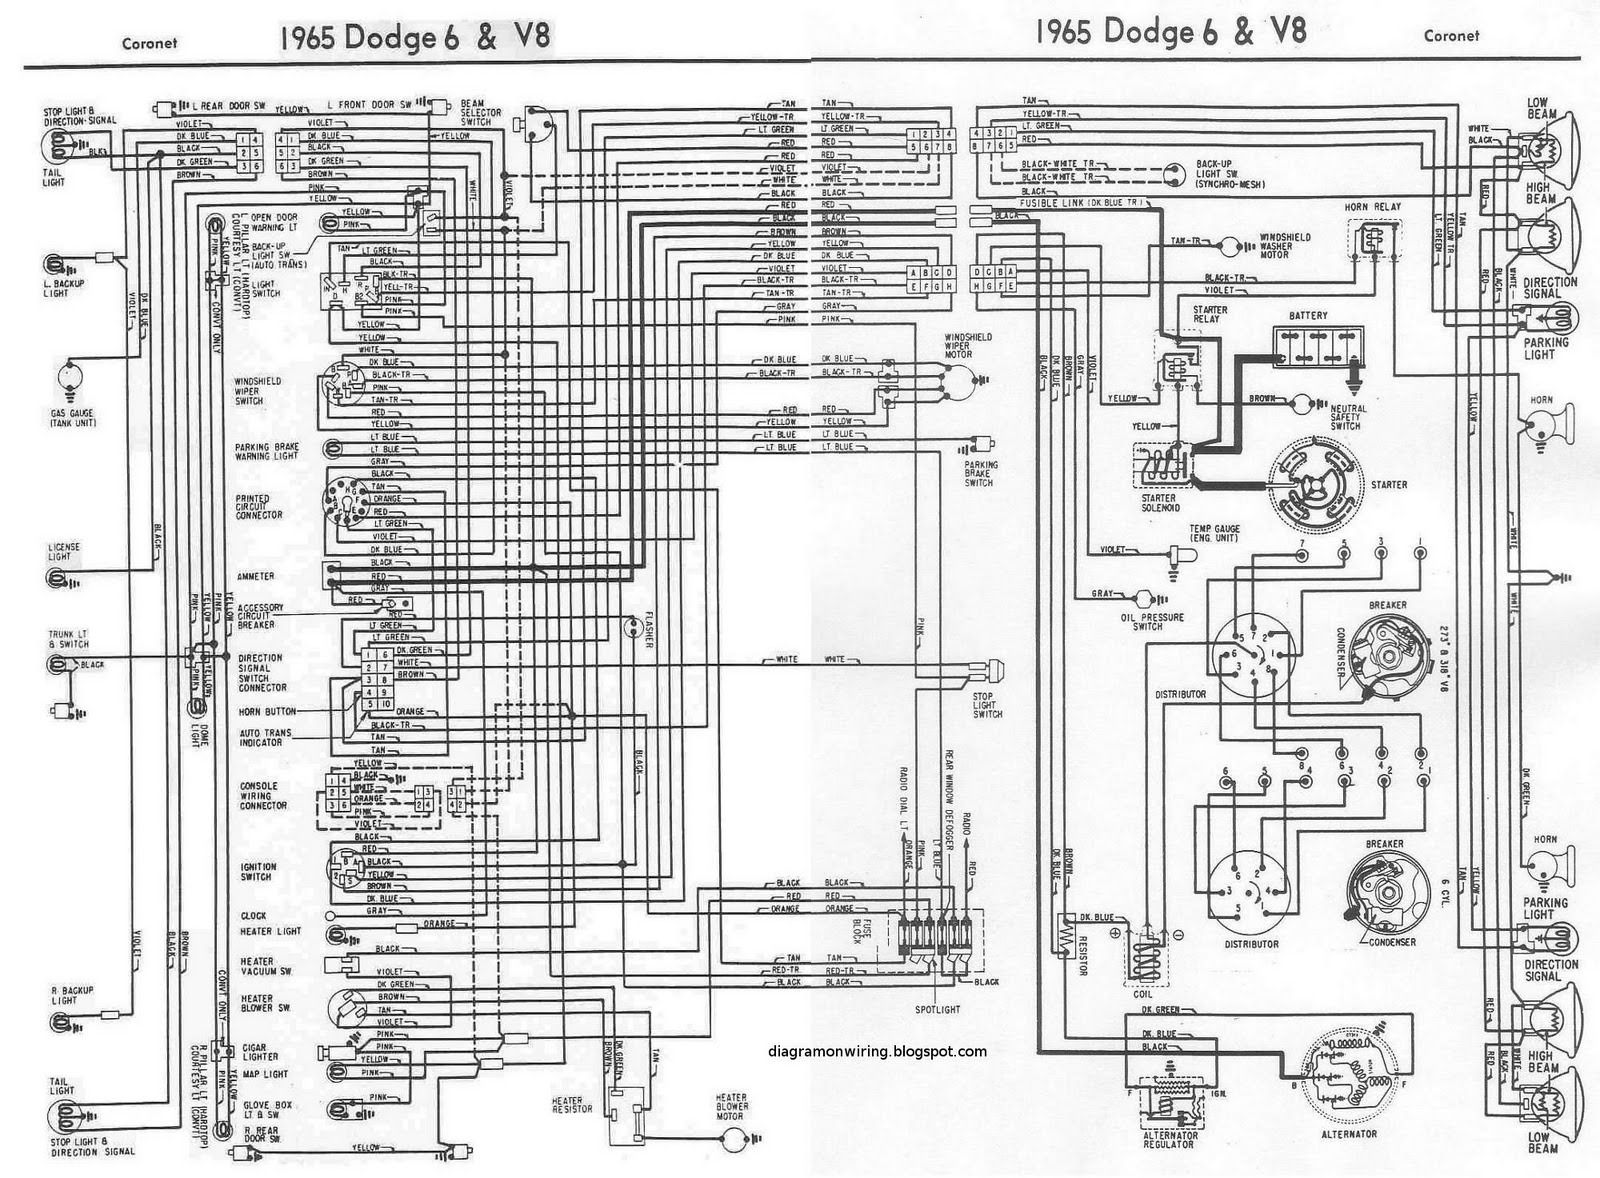 Pleasing 1969 Charger Wiring Diagram Wiring Diagram B2 Wiring Digital Resources Jebrpcompassionincorg